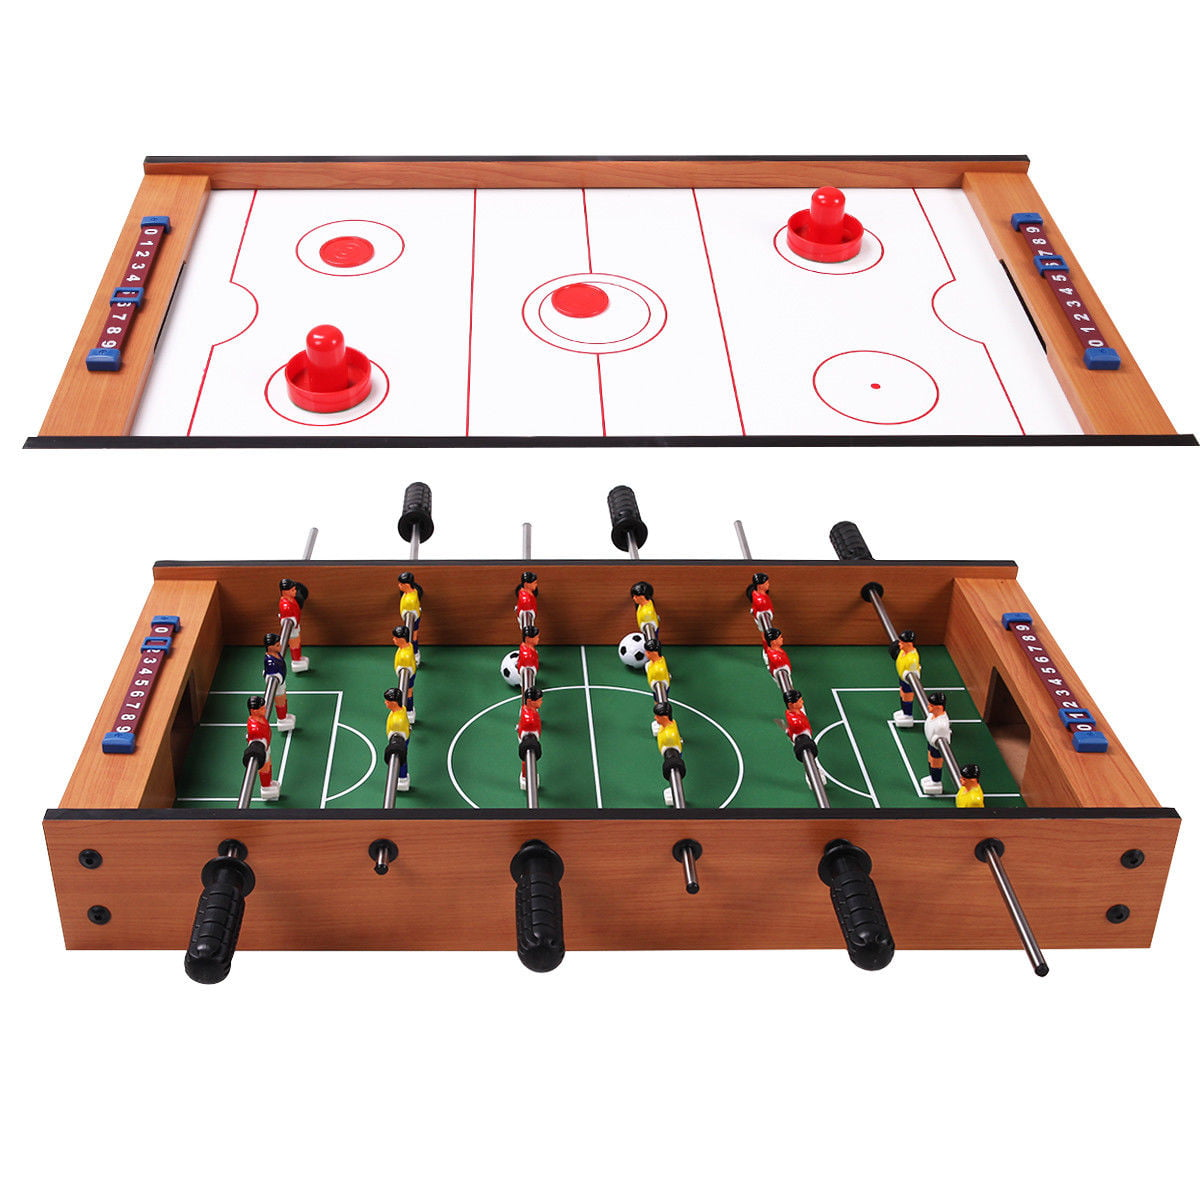 Gymax Kids Christmas Gift 2 In 1 Table Game Air Hockey Foosball Table by Gymax